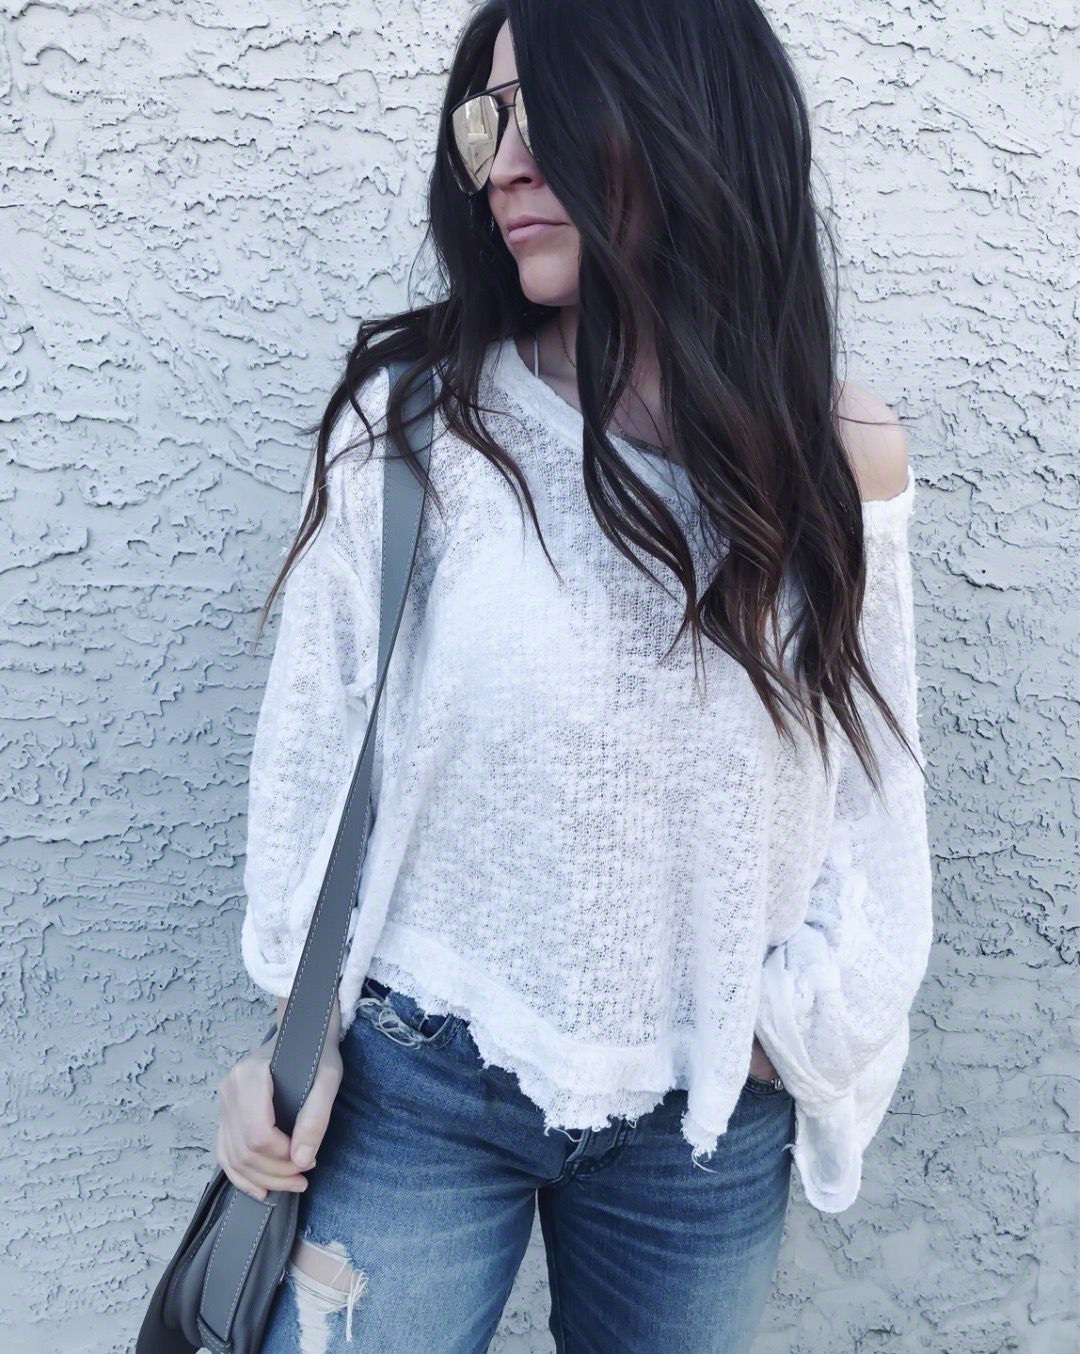 Instagram Round Up + Current Sales | Pine Barren Beauty | outfit of the day, outfit details, spring outfit, slouchy tee, white tee, distressed denim